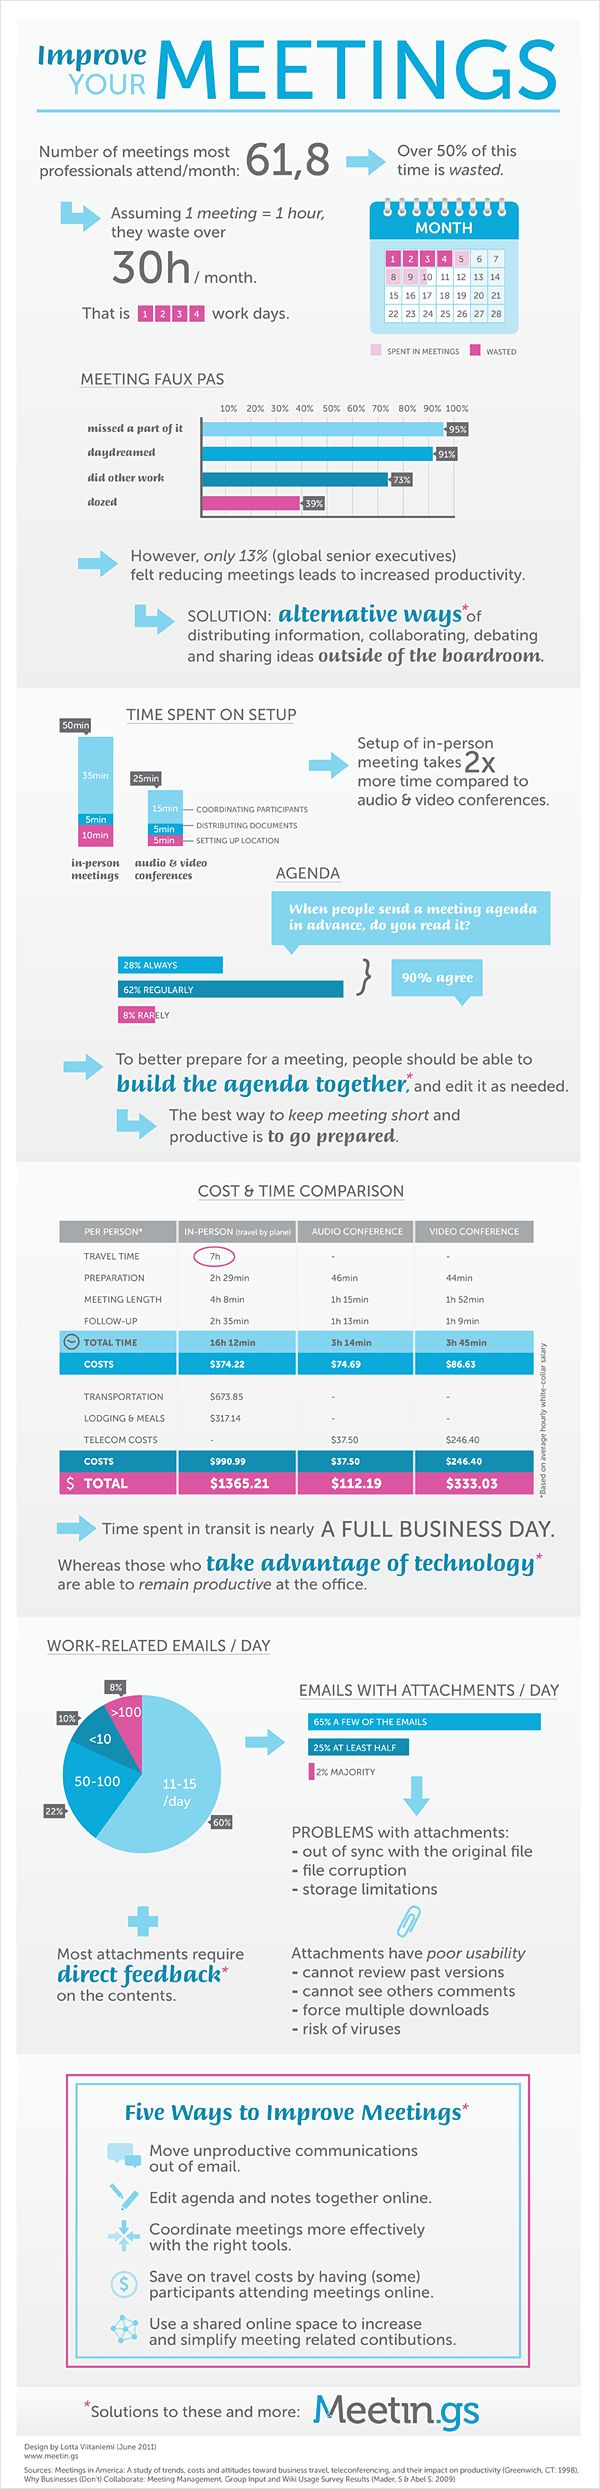 Cool info graphic by the Join.me team signaling that most people waste 30 hours a month in needless meetings.